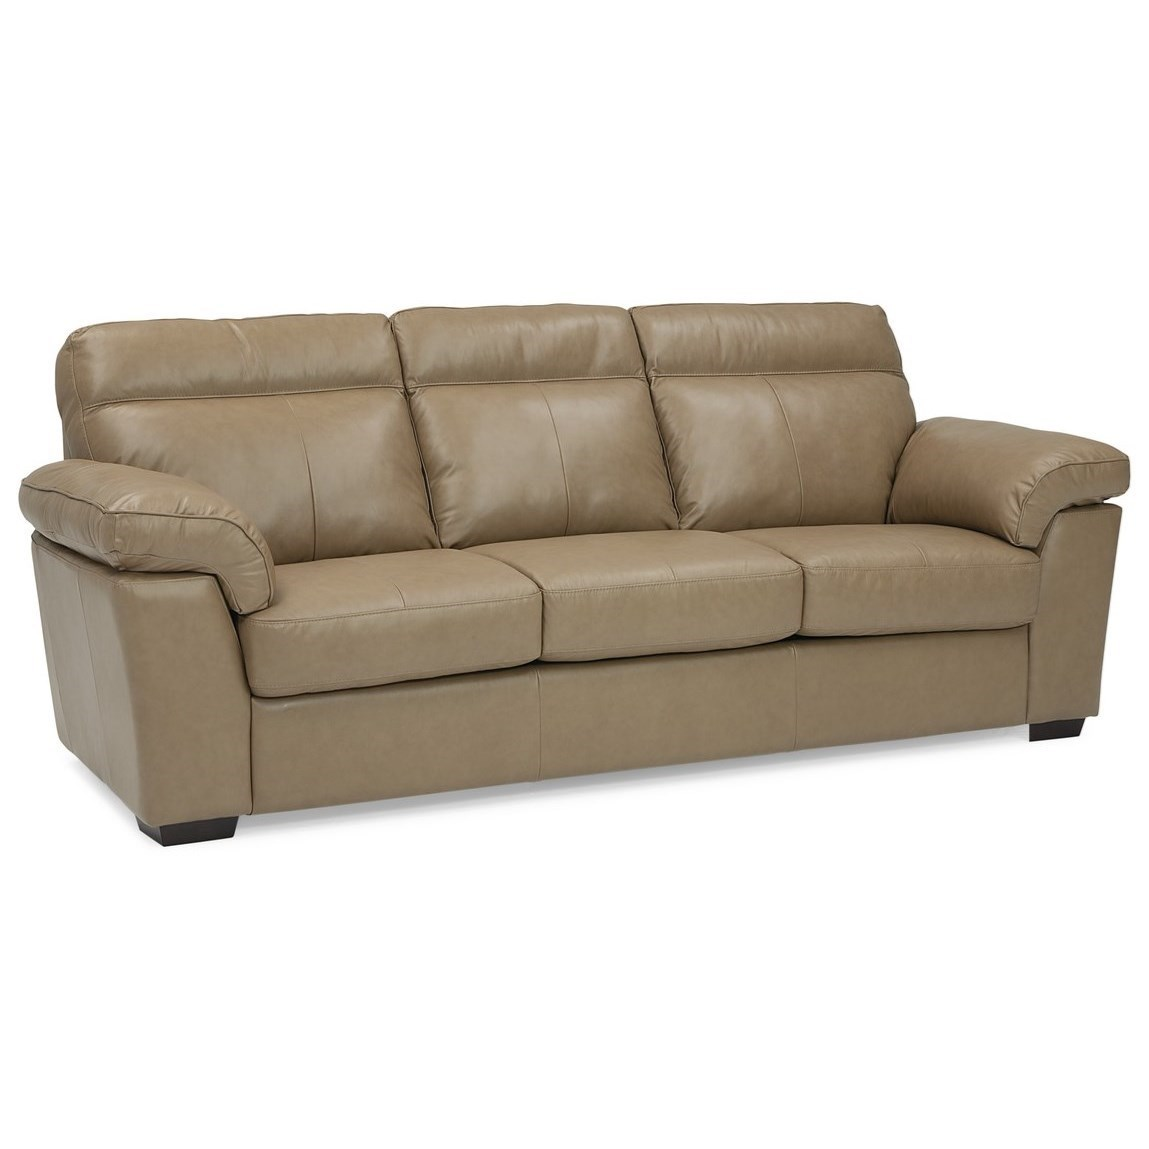 width of a sofa bed single circle chair palliser kingston casual queen with pillow arms reid s